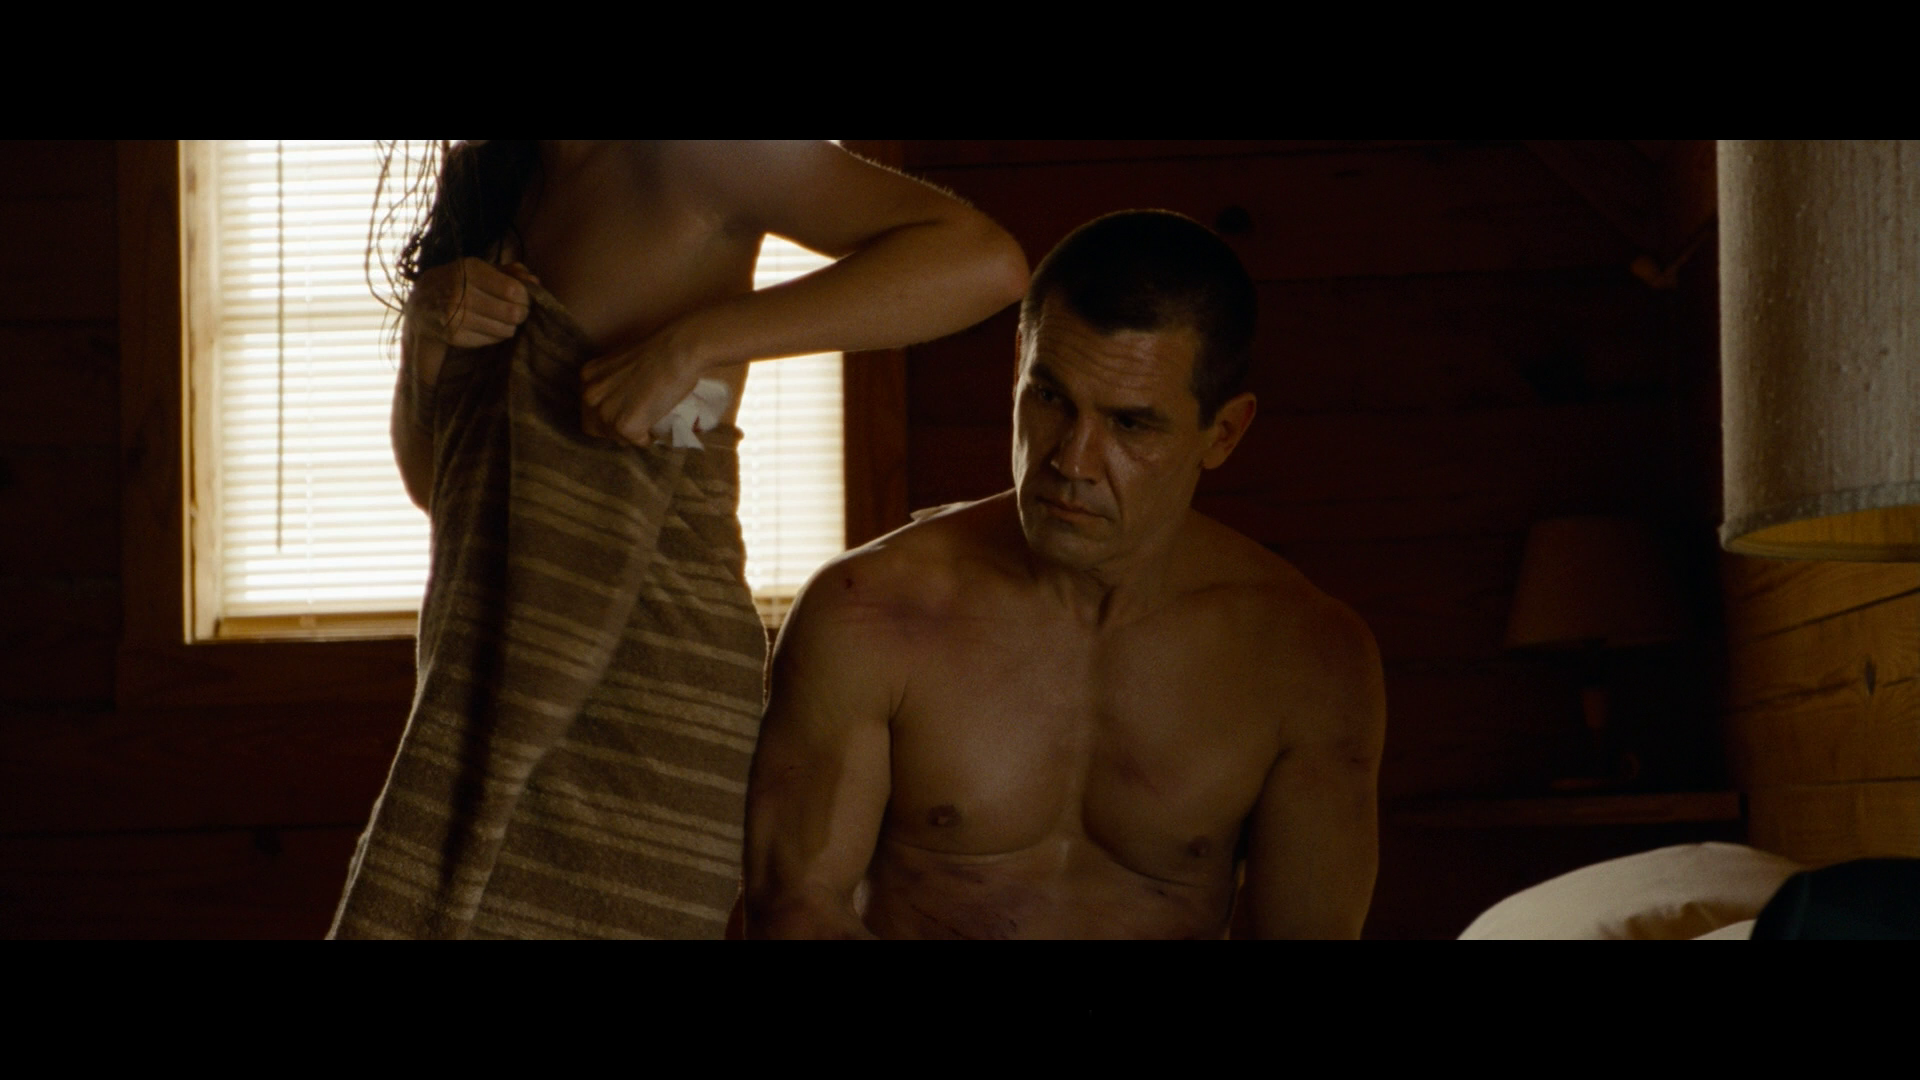 Nude scene in jesse james